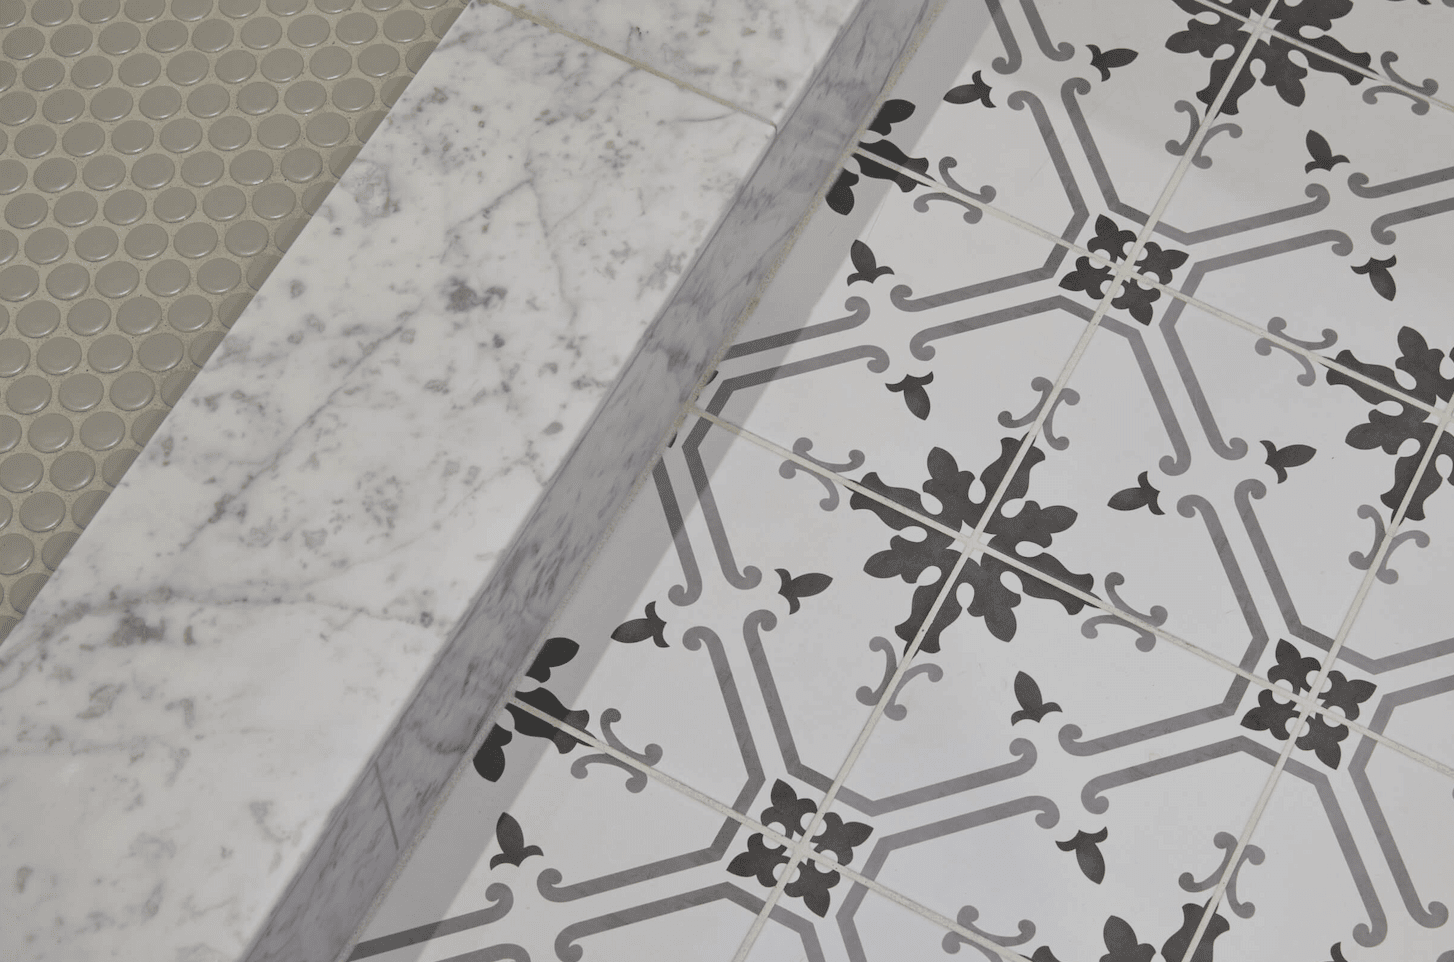 Mosaic tile flooring in Vancouver, CN from All Surfaces